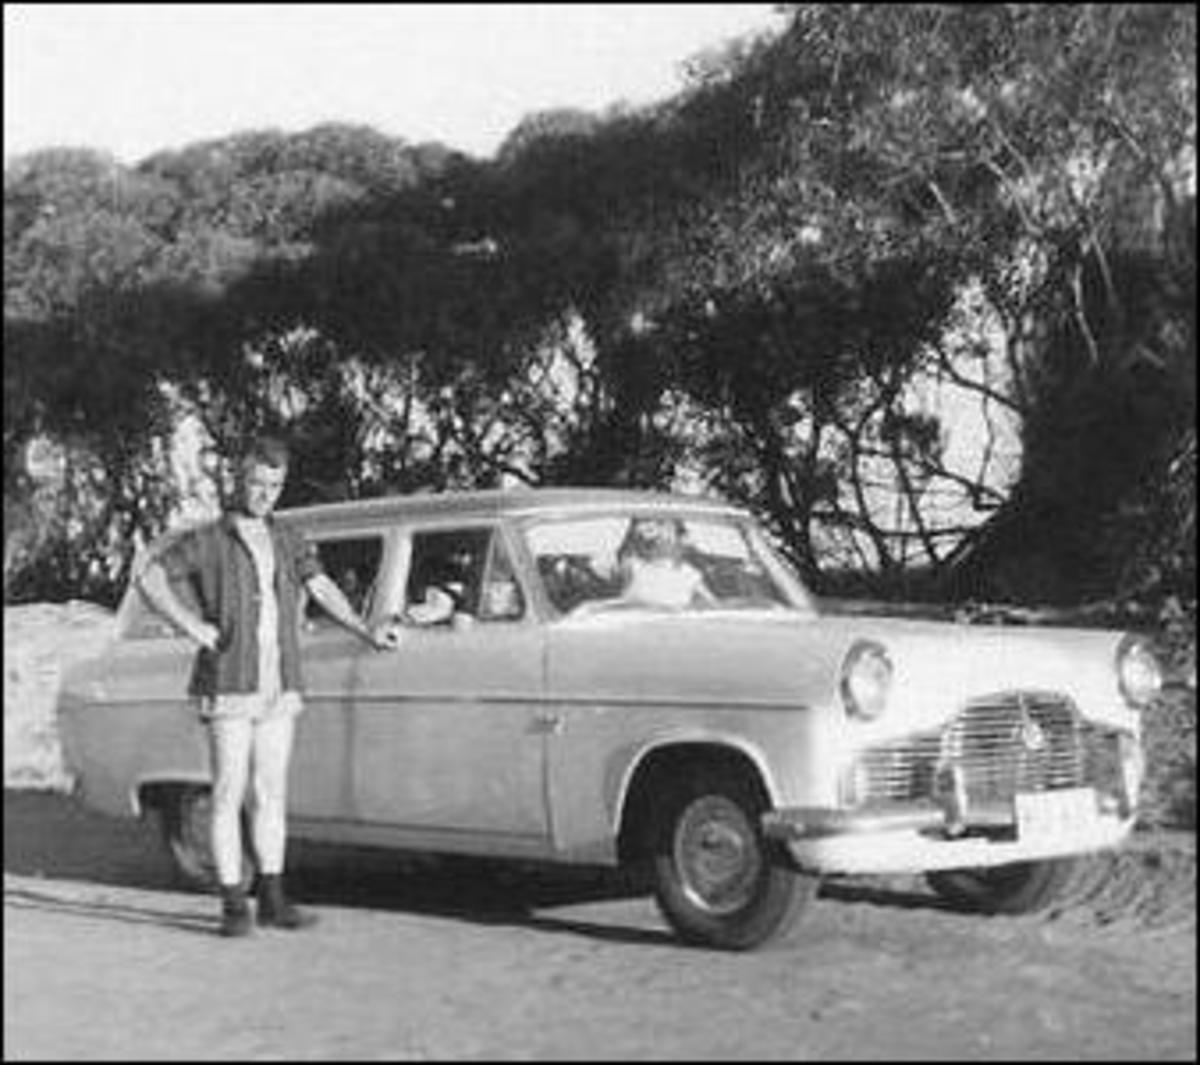 Driving in the South Australian Bush in 1967